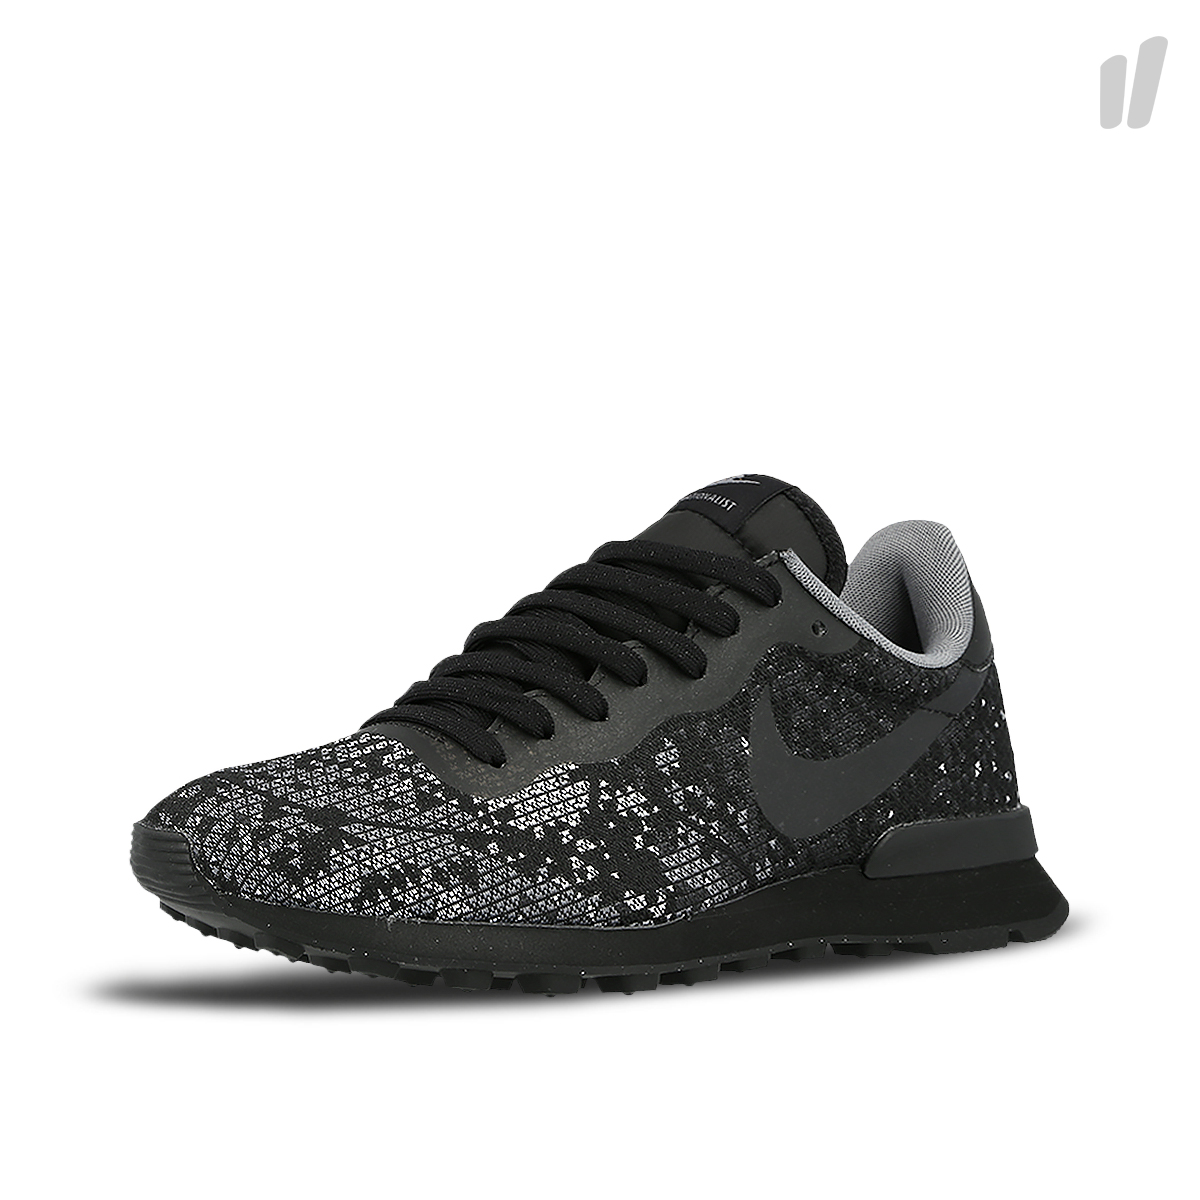 nike internationalist jacquard 839233 001 overkill berlin graffiti bekleidung sneaker. Black Bedroom Furniture Sets. Home Design Ideas